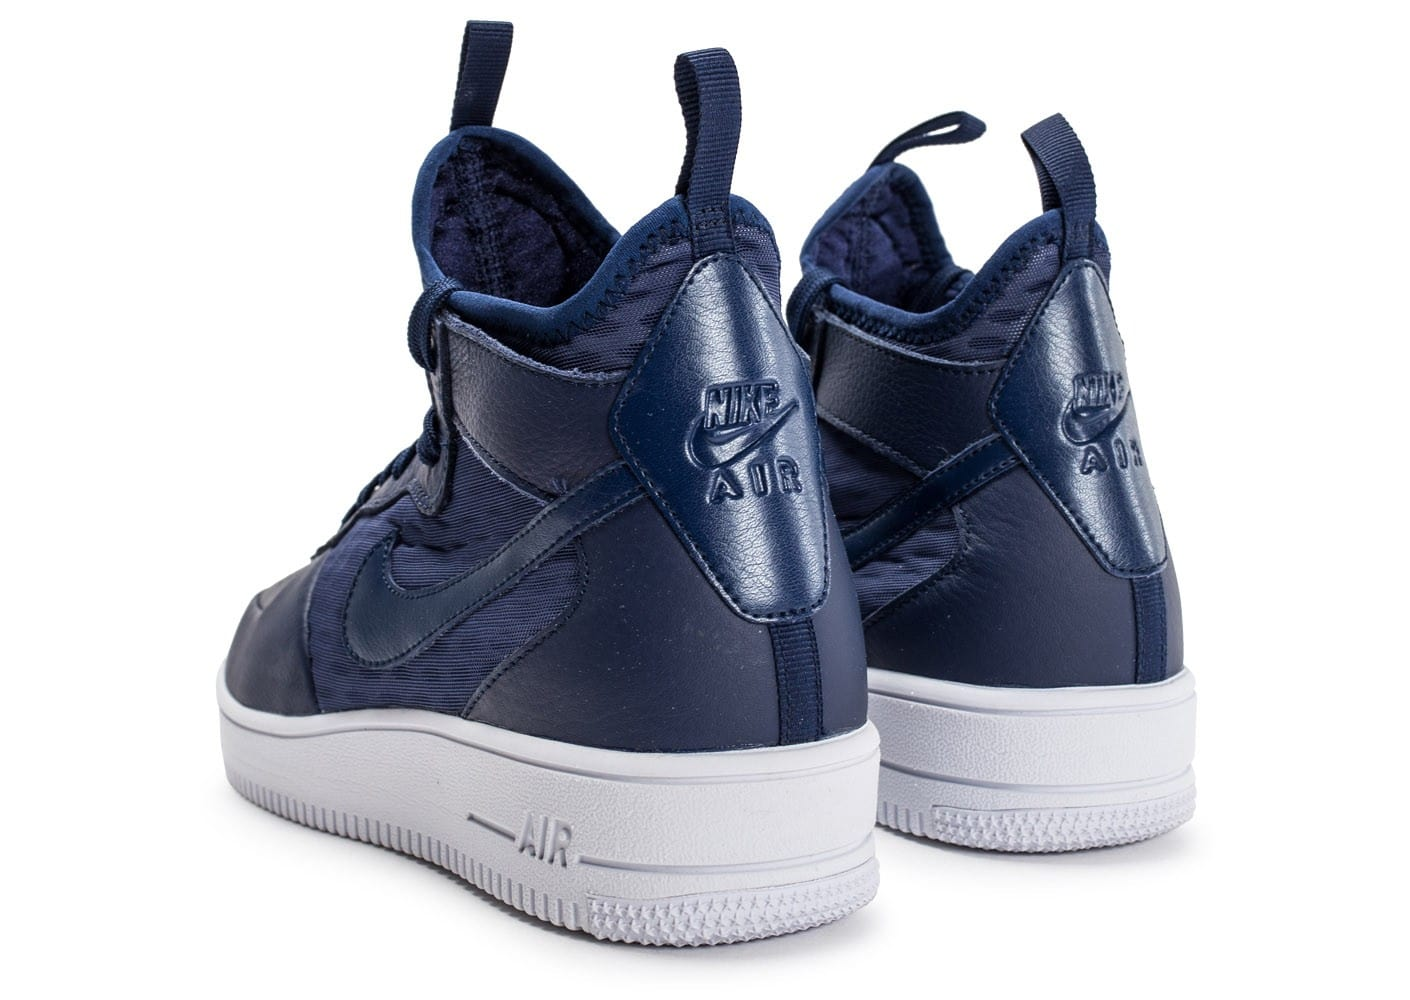 Air Chaussures Nike Ultraforce Baskets Mid 1 Homme Force Bleue uXlOZwkiTP